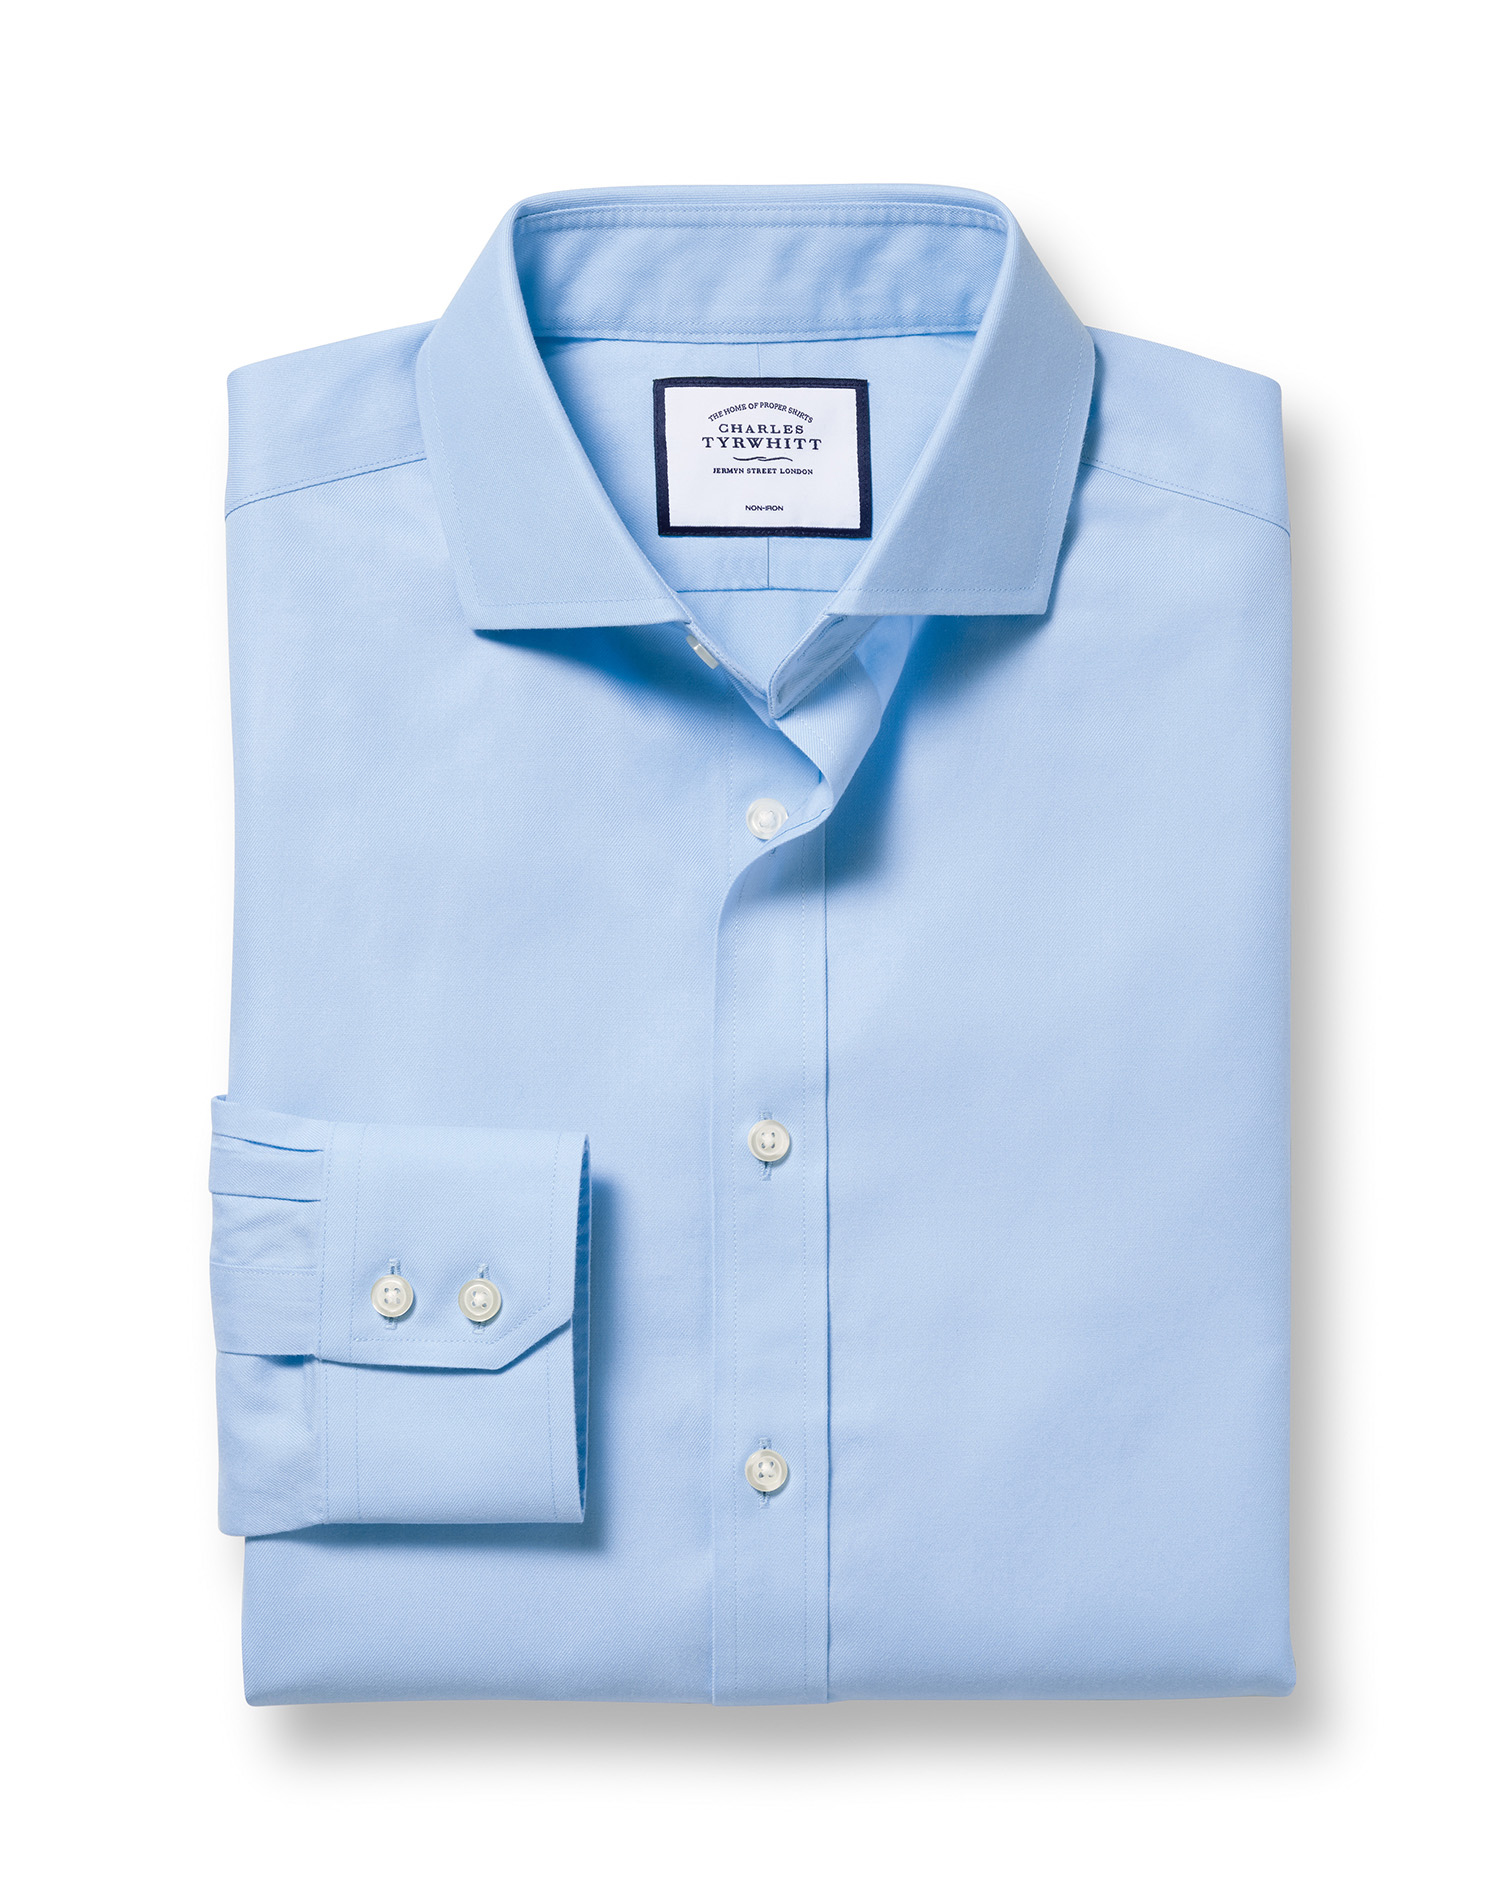 Extra Slim Fit Cutaway Non-Iron Twill Sky Blue Cotton Formal Shirt Single Cuff Size 16/33 by Charles